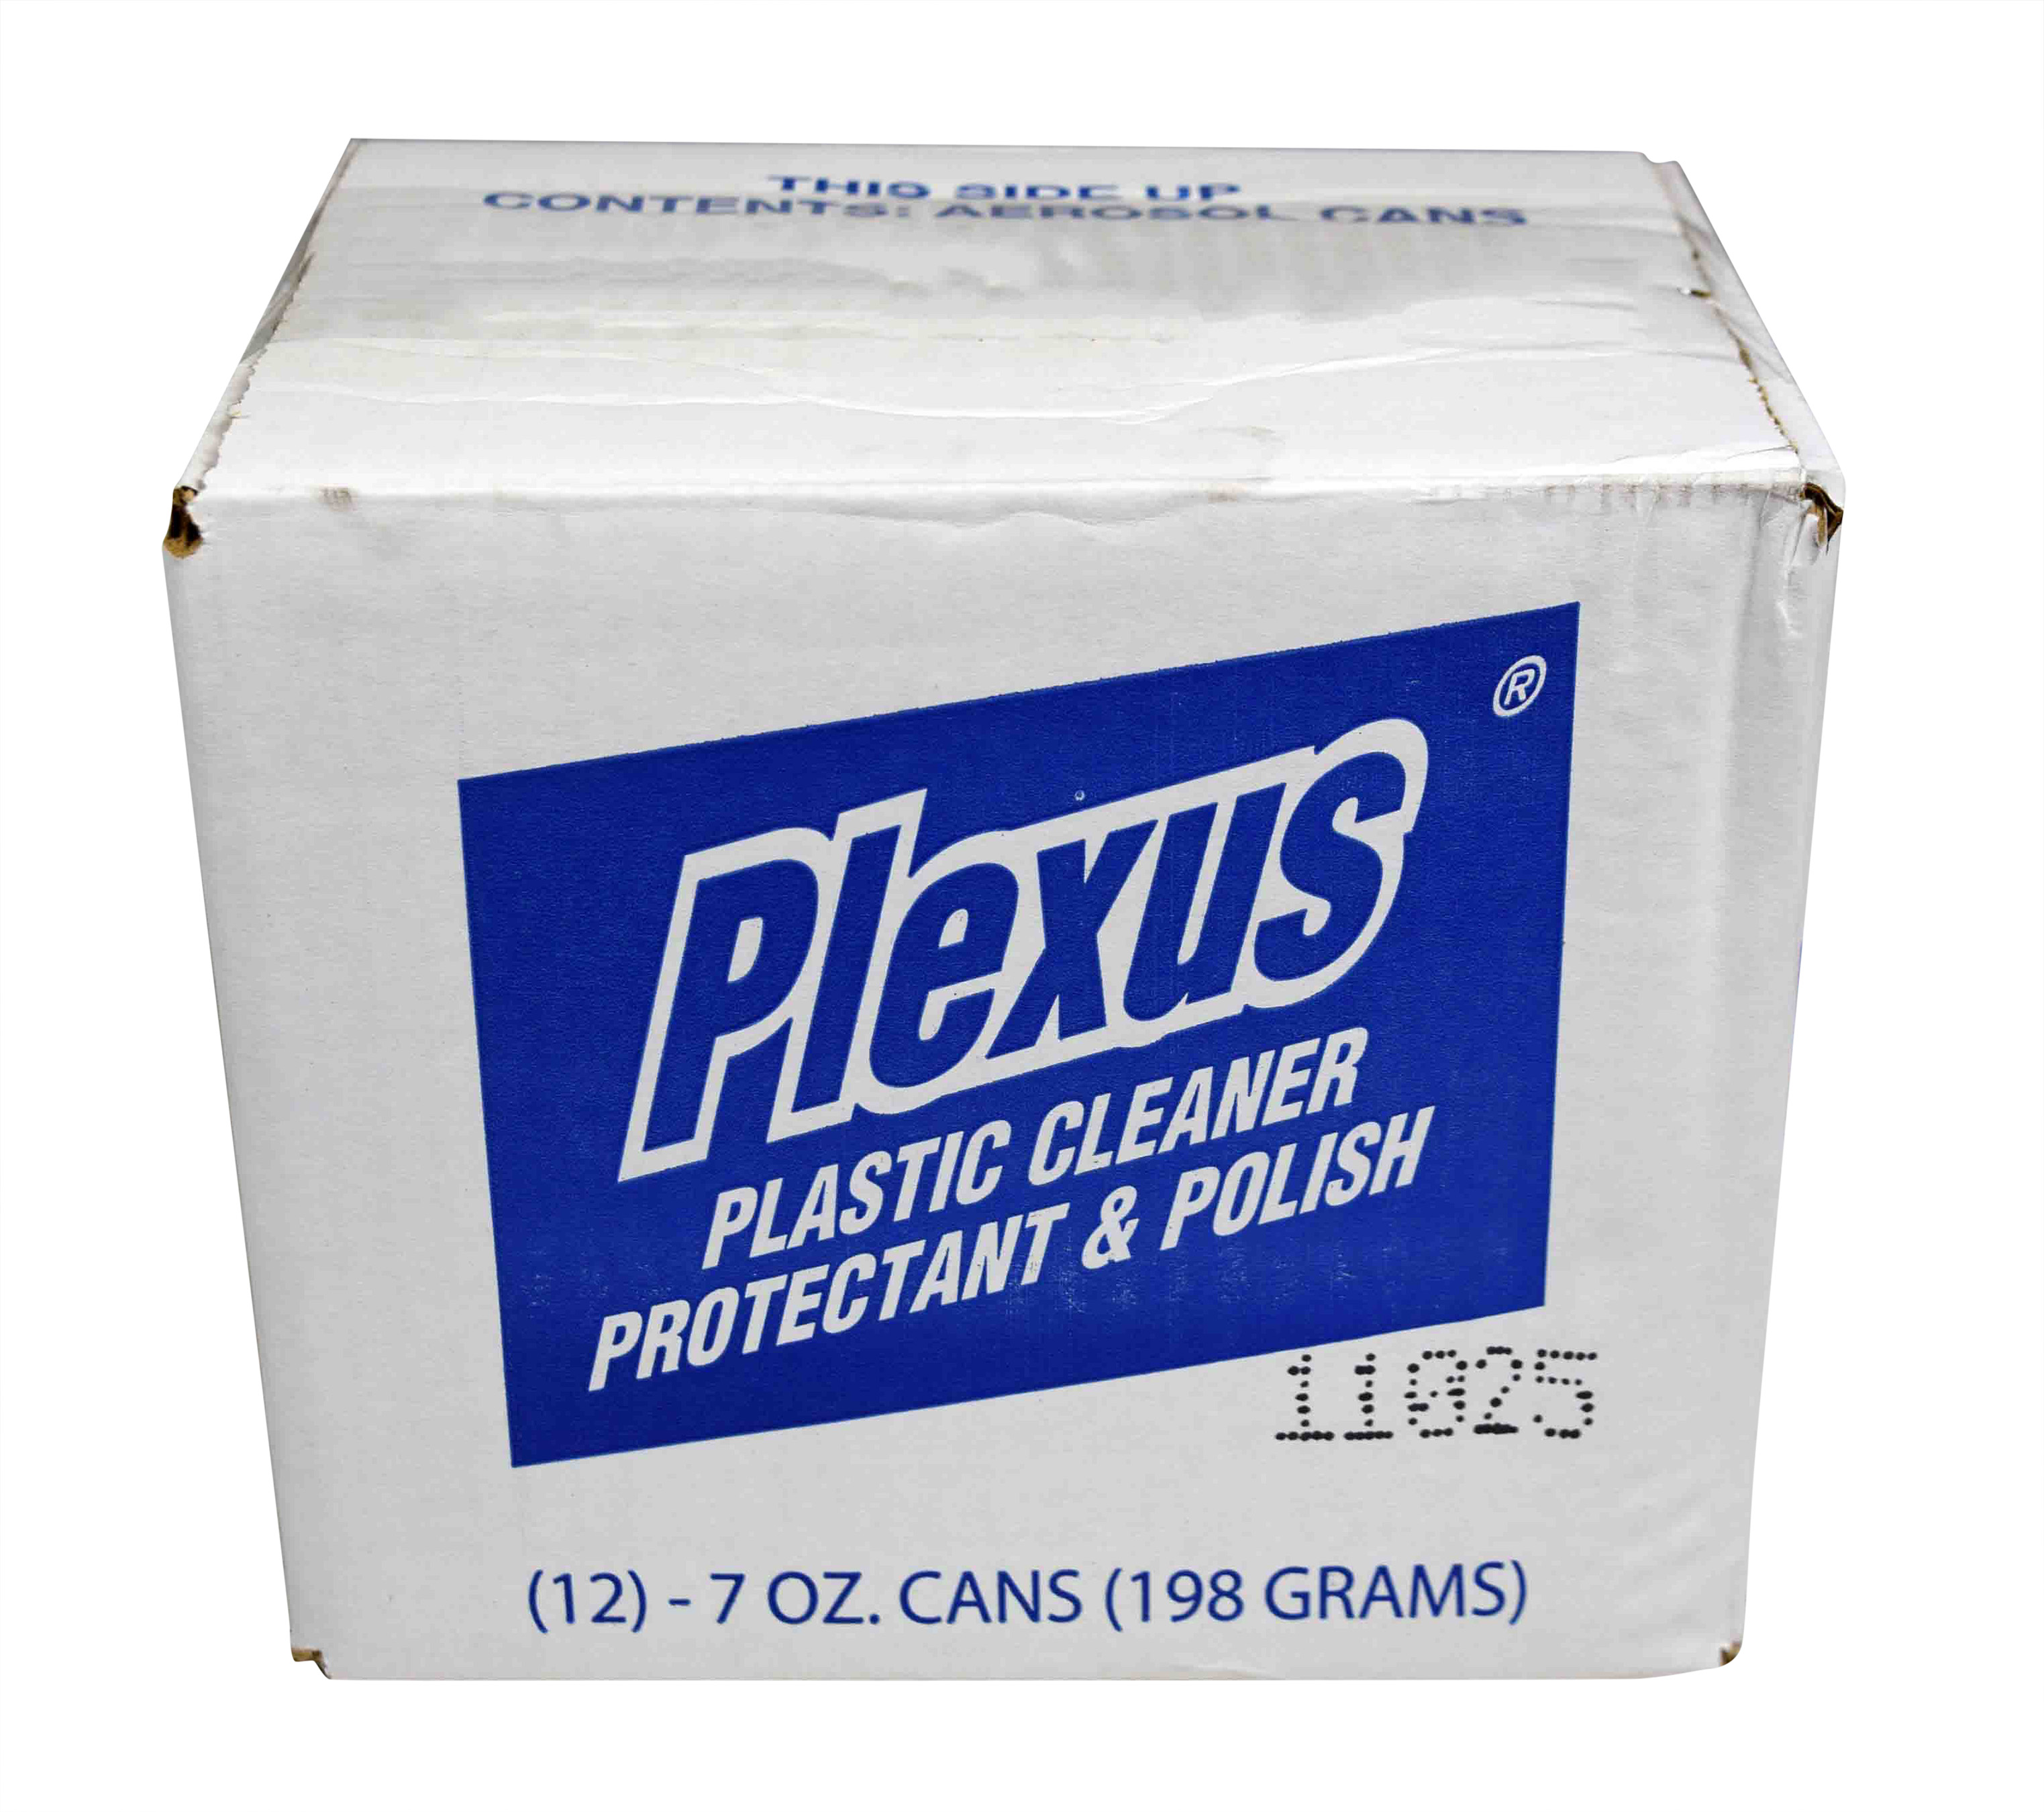 Plexus-Plastic-Cleaner-Protectant-Polish-7oz-Can-12-Pack-MADE-In-the-USA-image-2